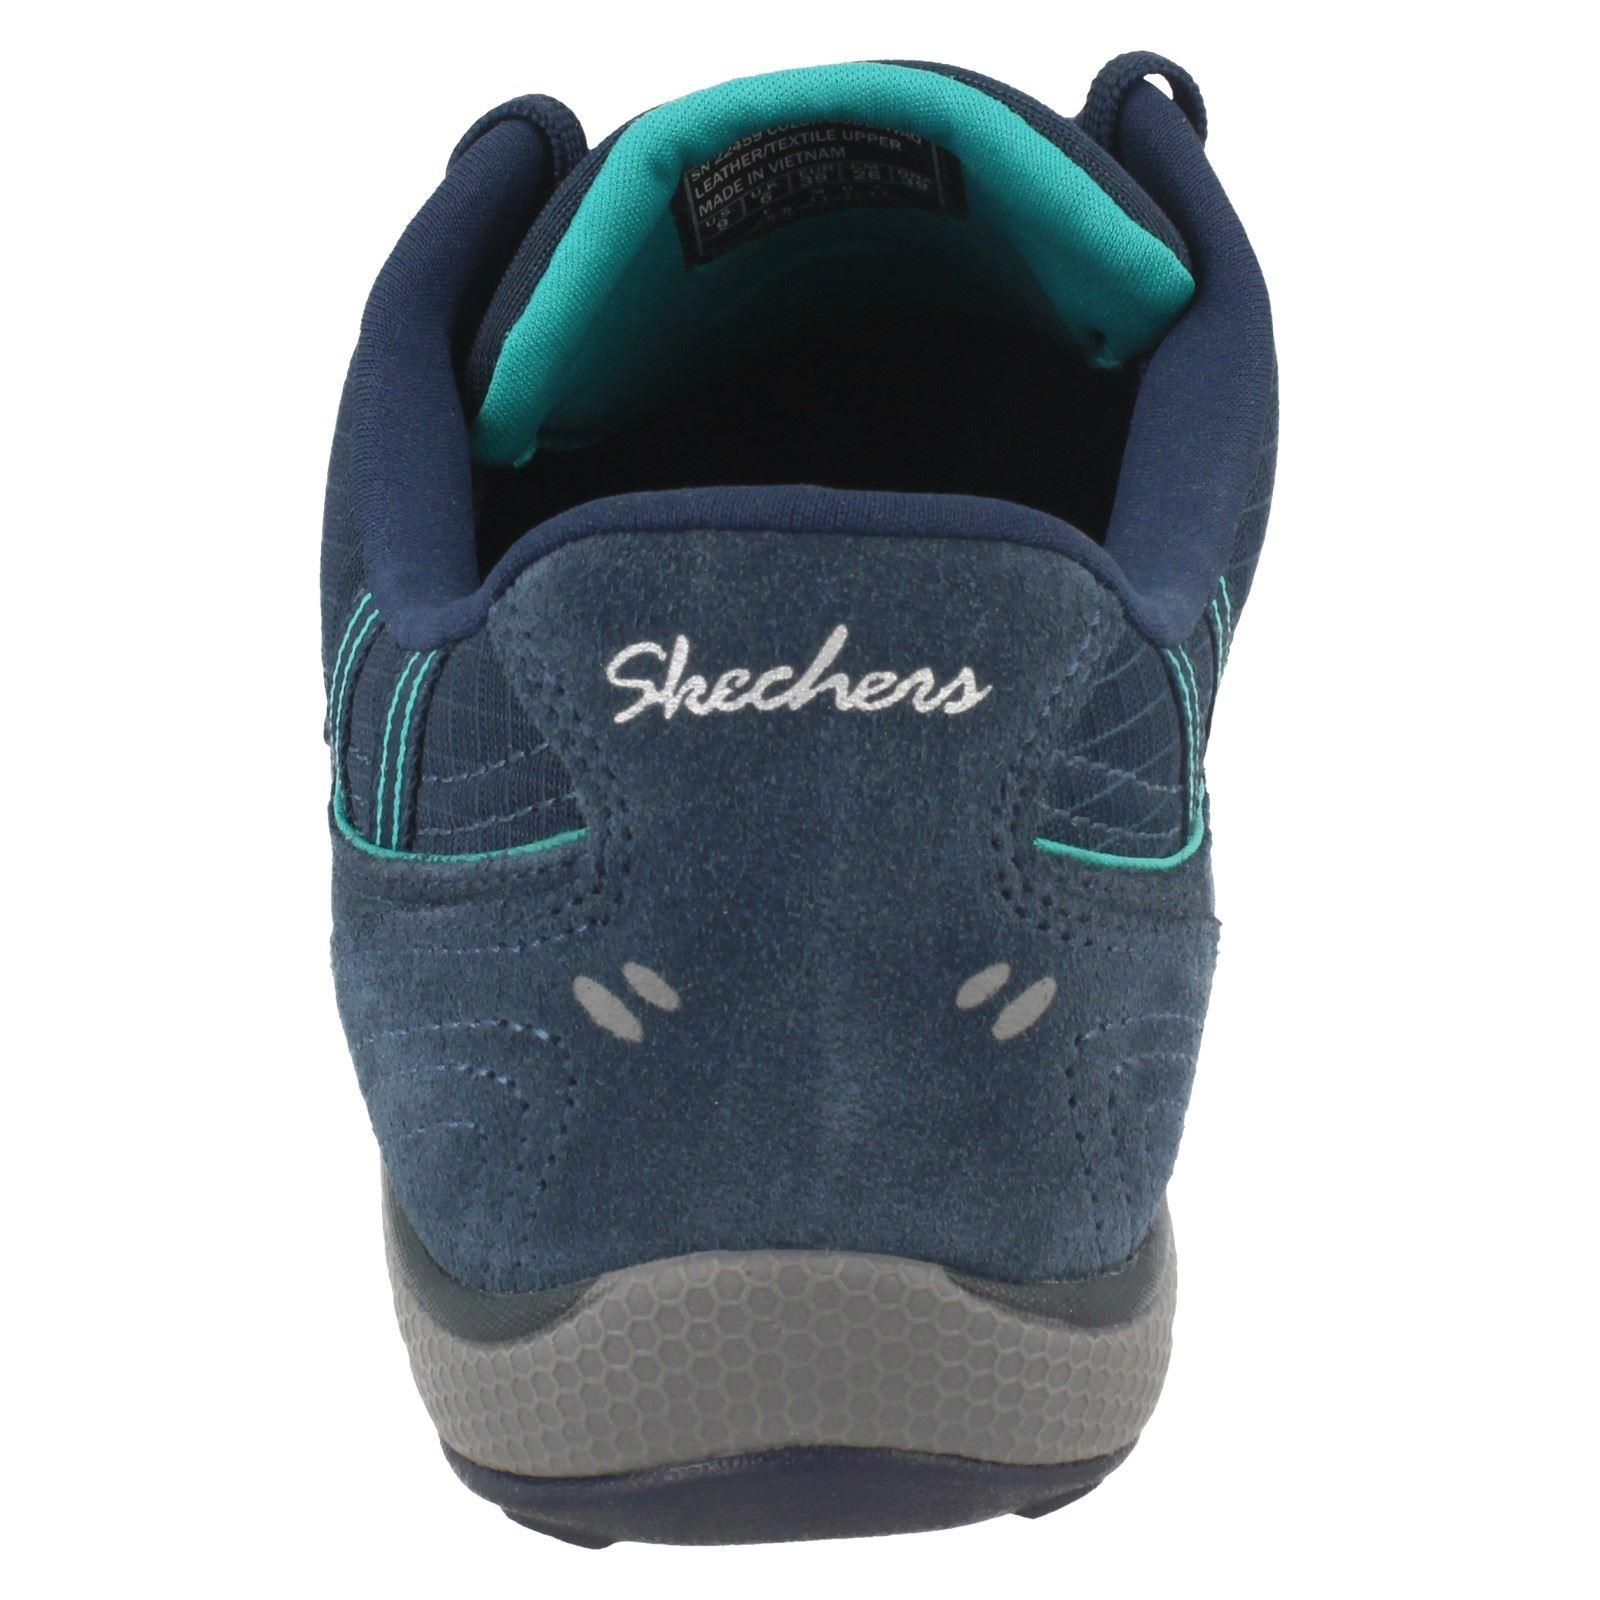 4b7e6066d46c Ladies Skechers Relaxed Fit Trainers  Breathe Easy Just Relax